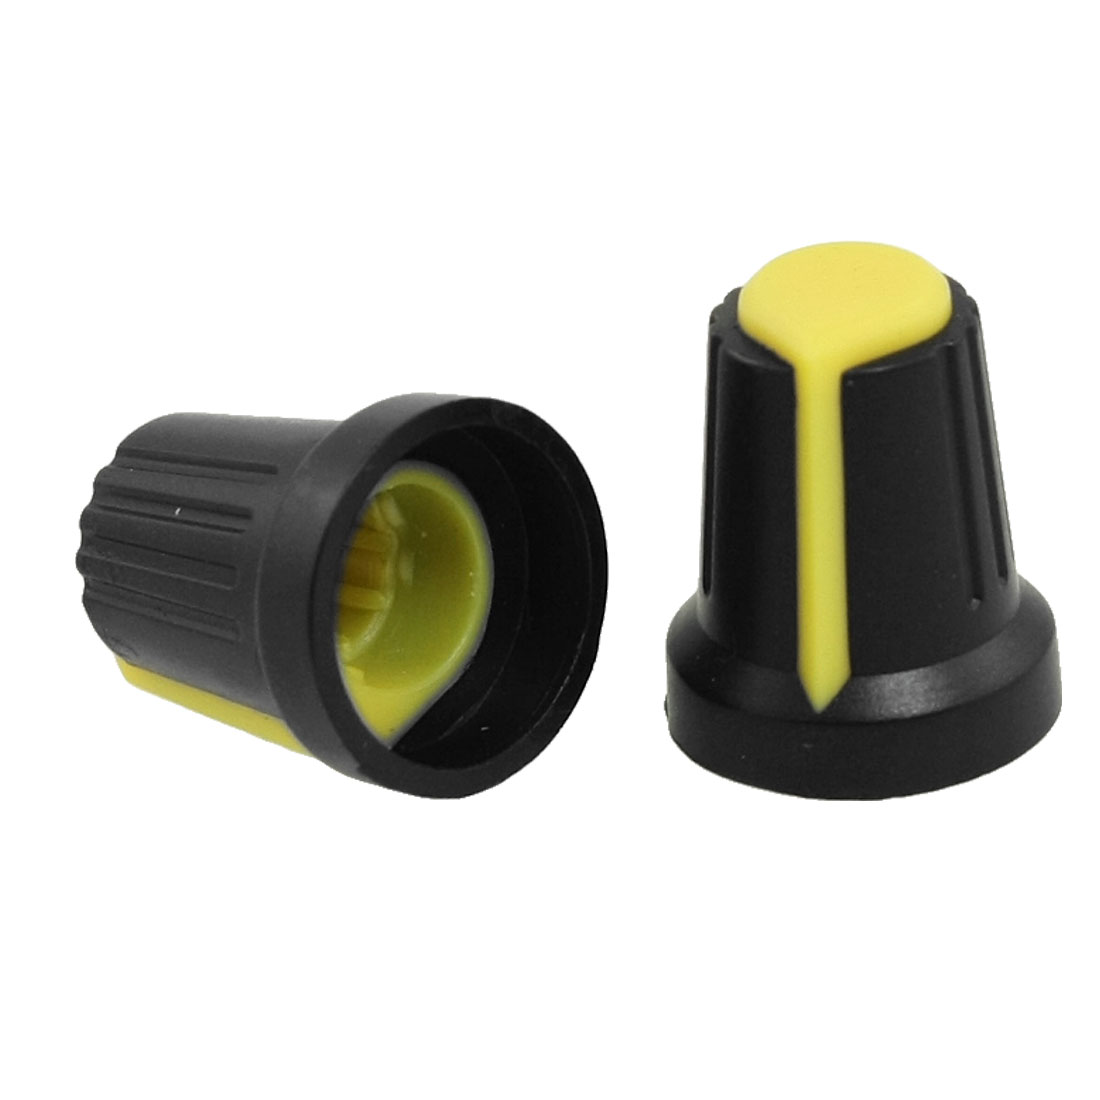 10 Pcs 6mm Shaft Insert Dia Yellow Mark Black Potentiometer Knobs Caps